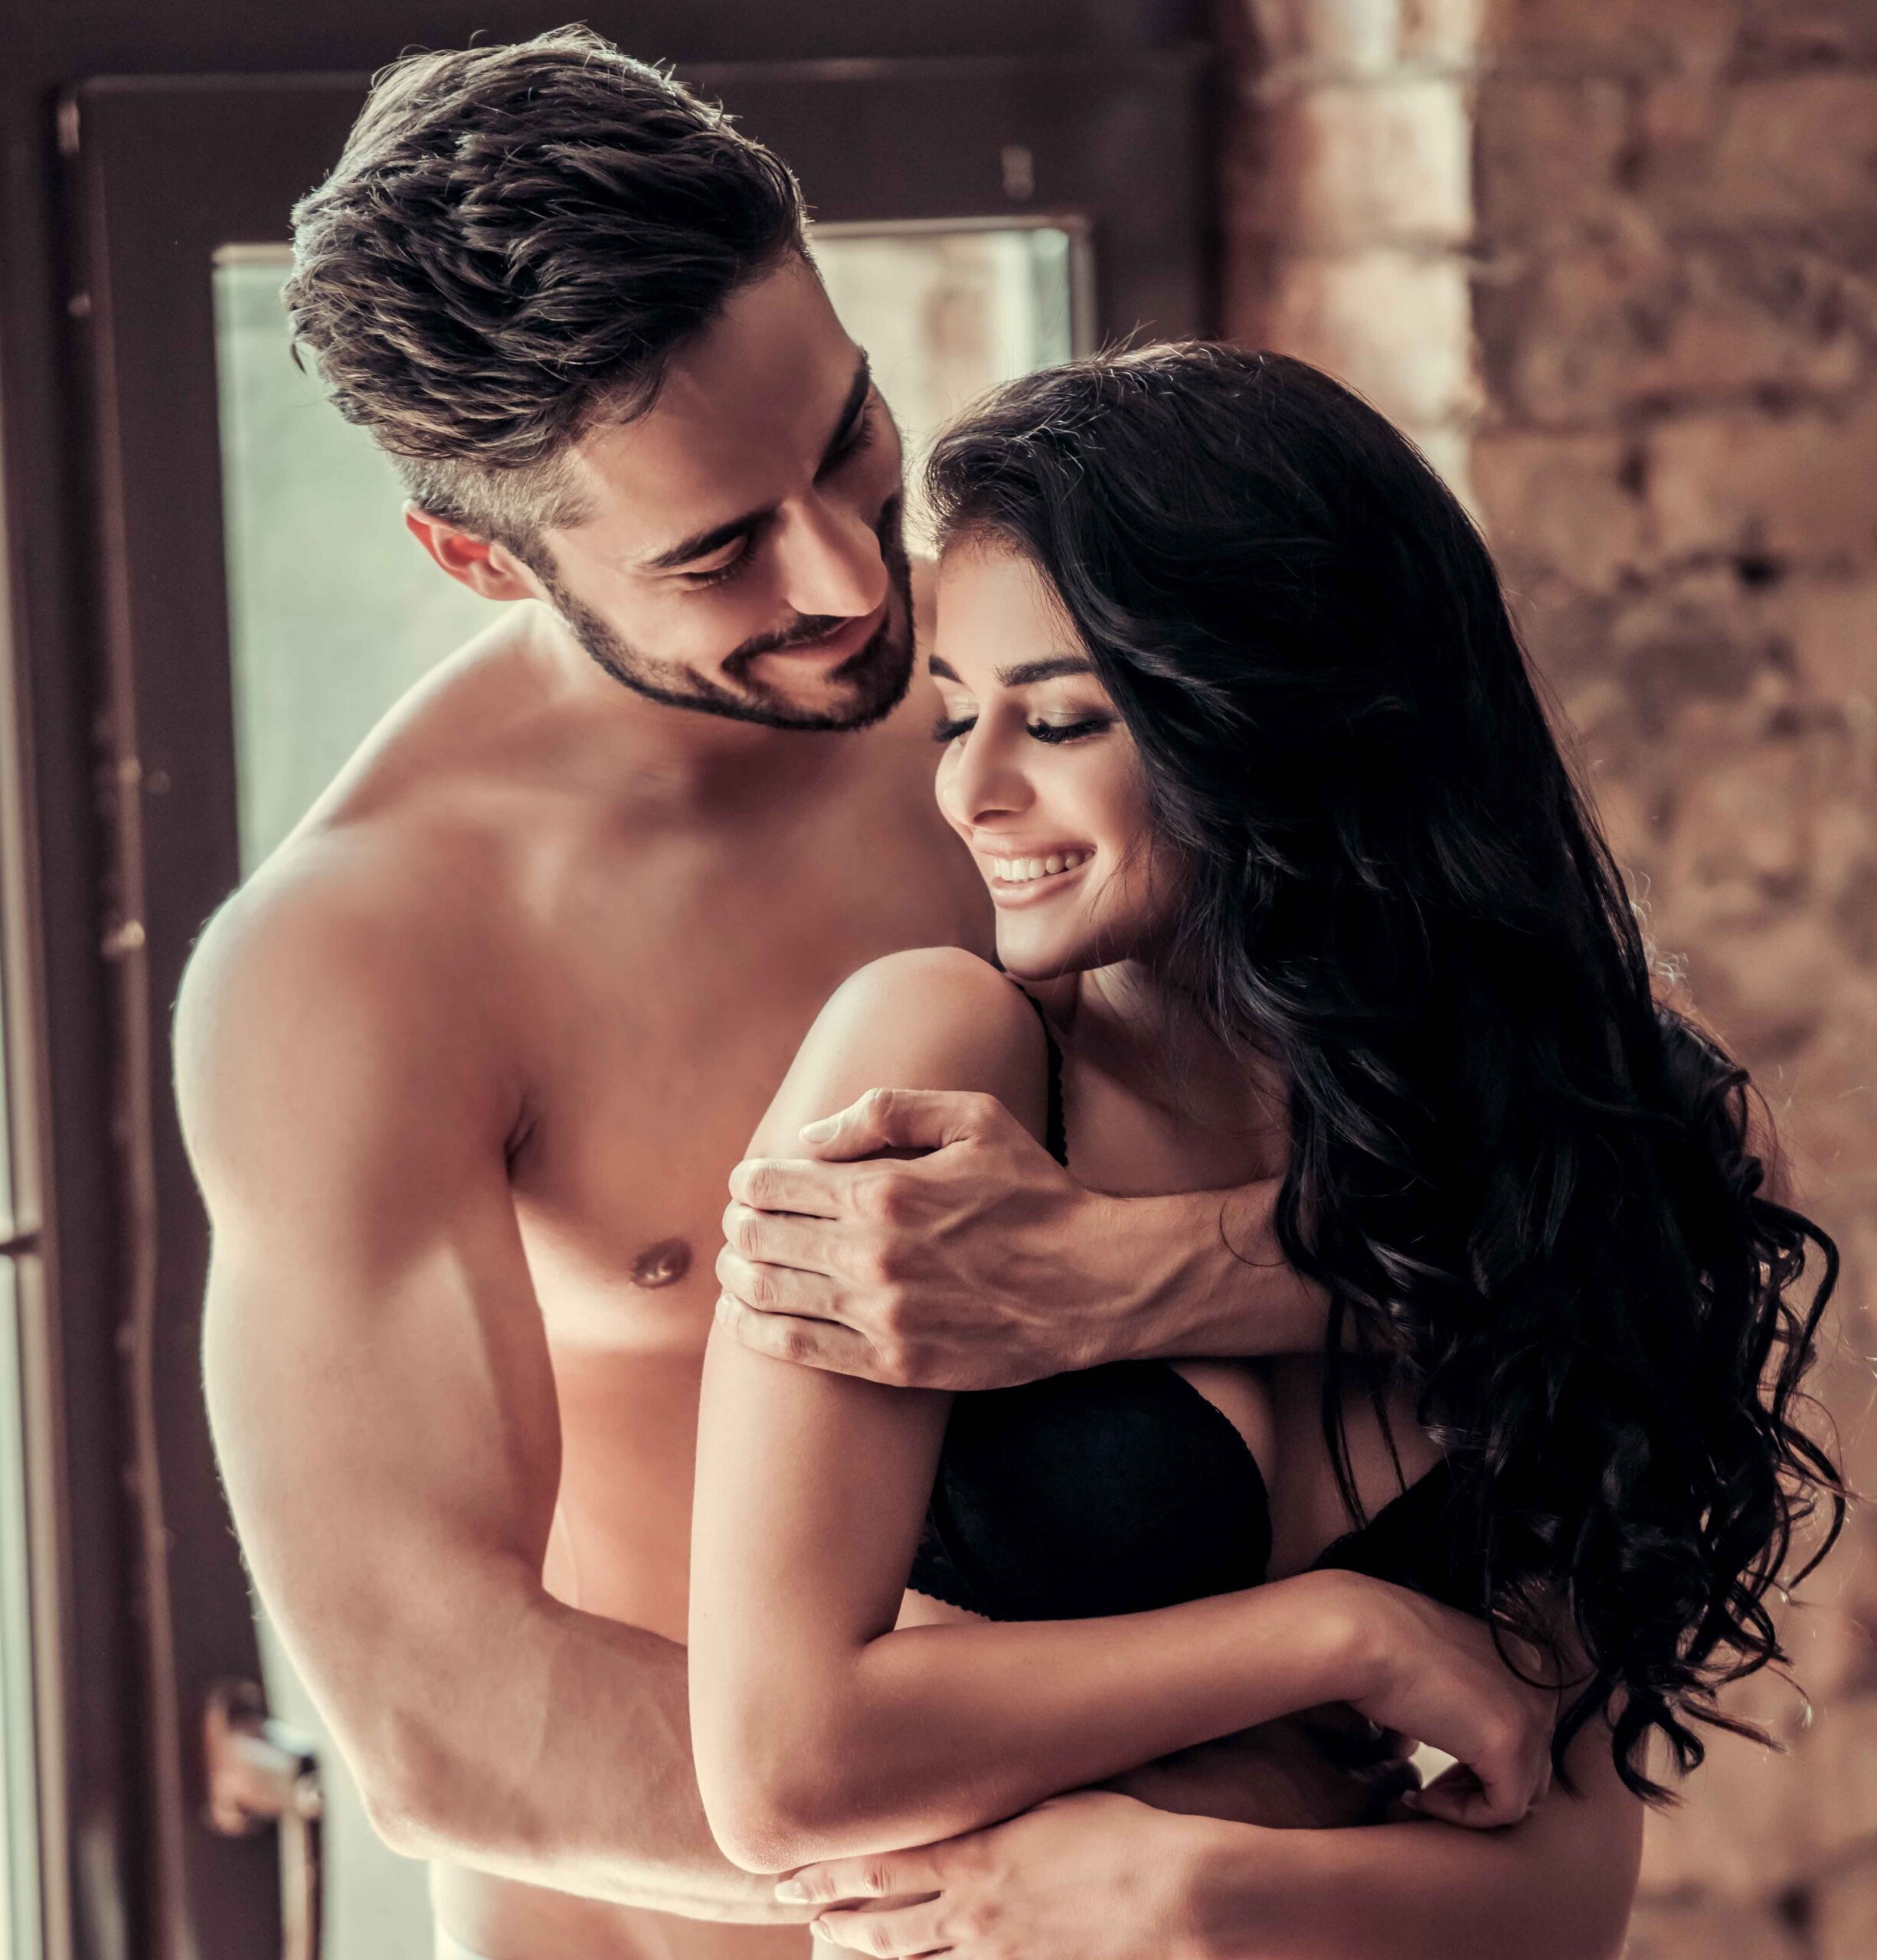 Sexy Girl With Closed Eyes Hugging Man Isolated On Black Together, Embrace